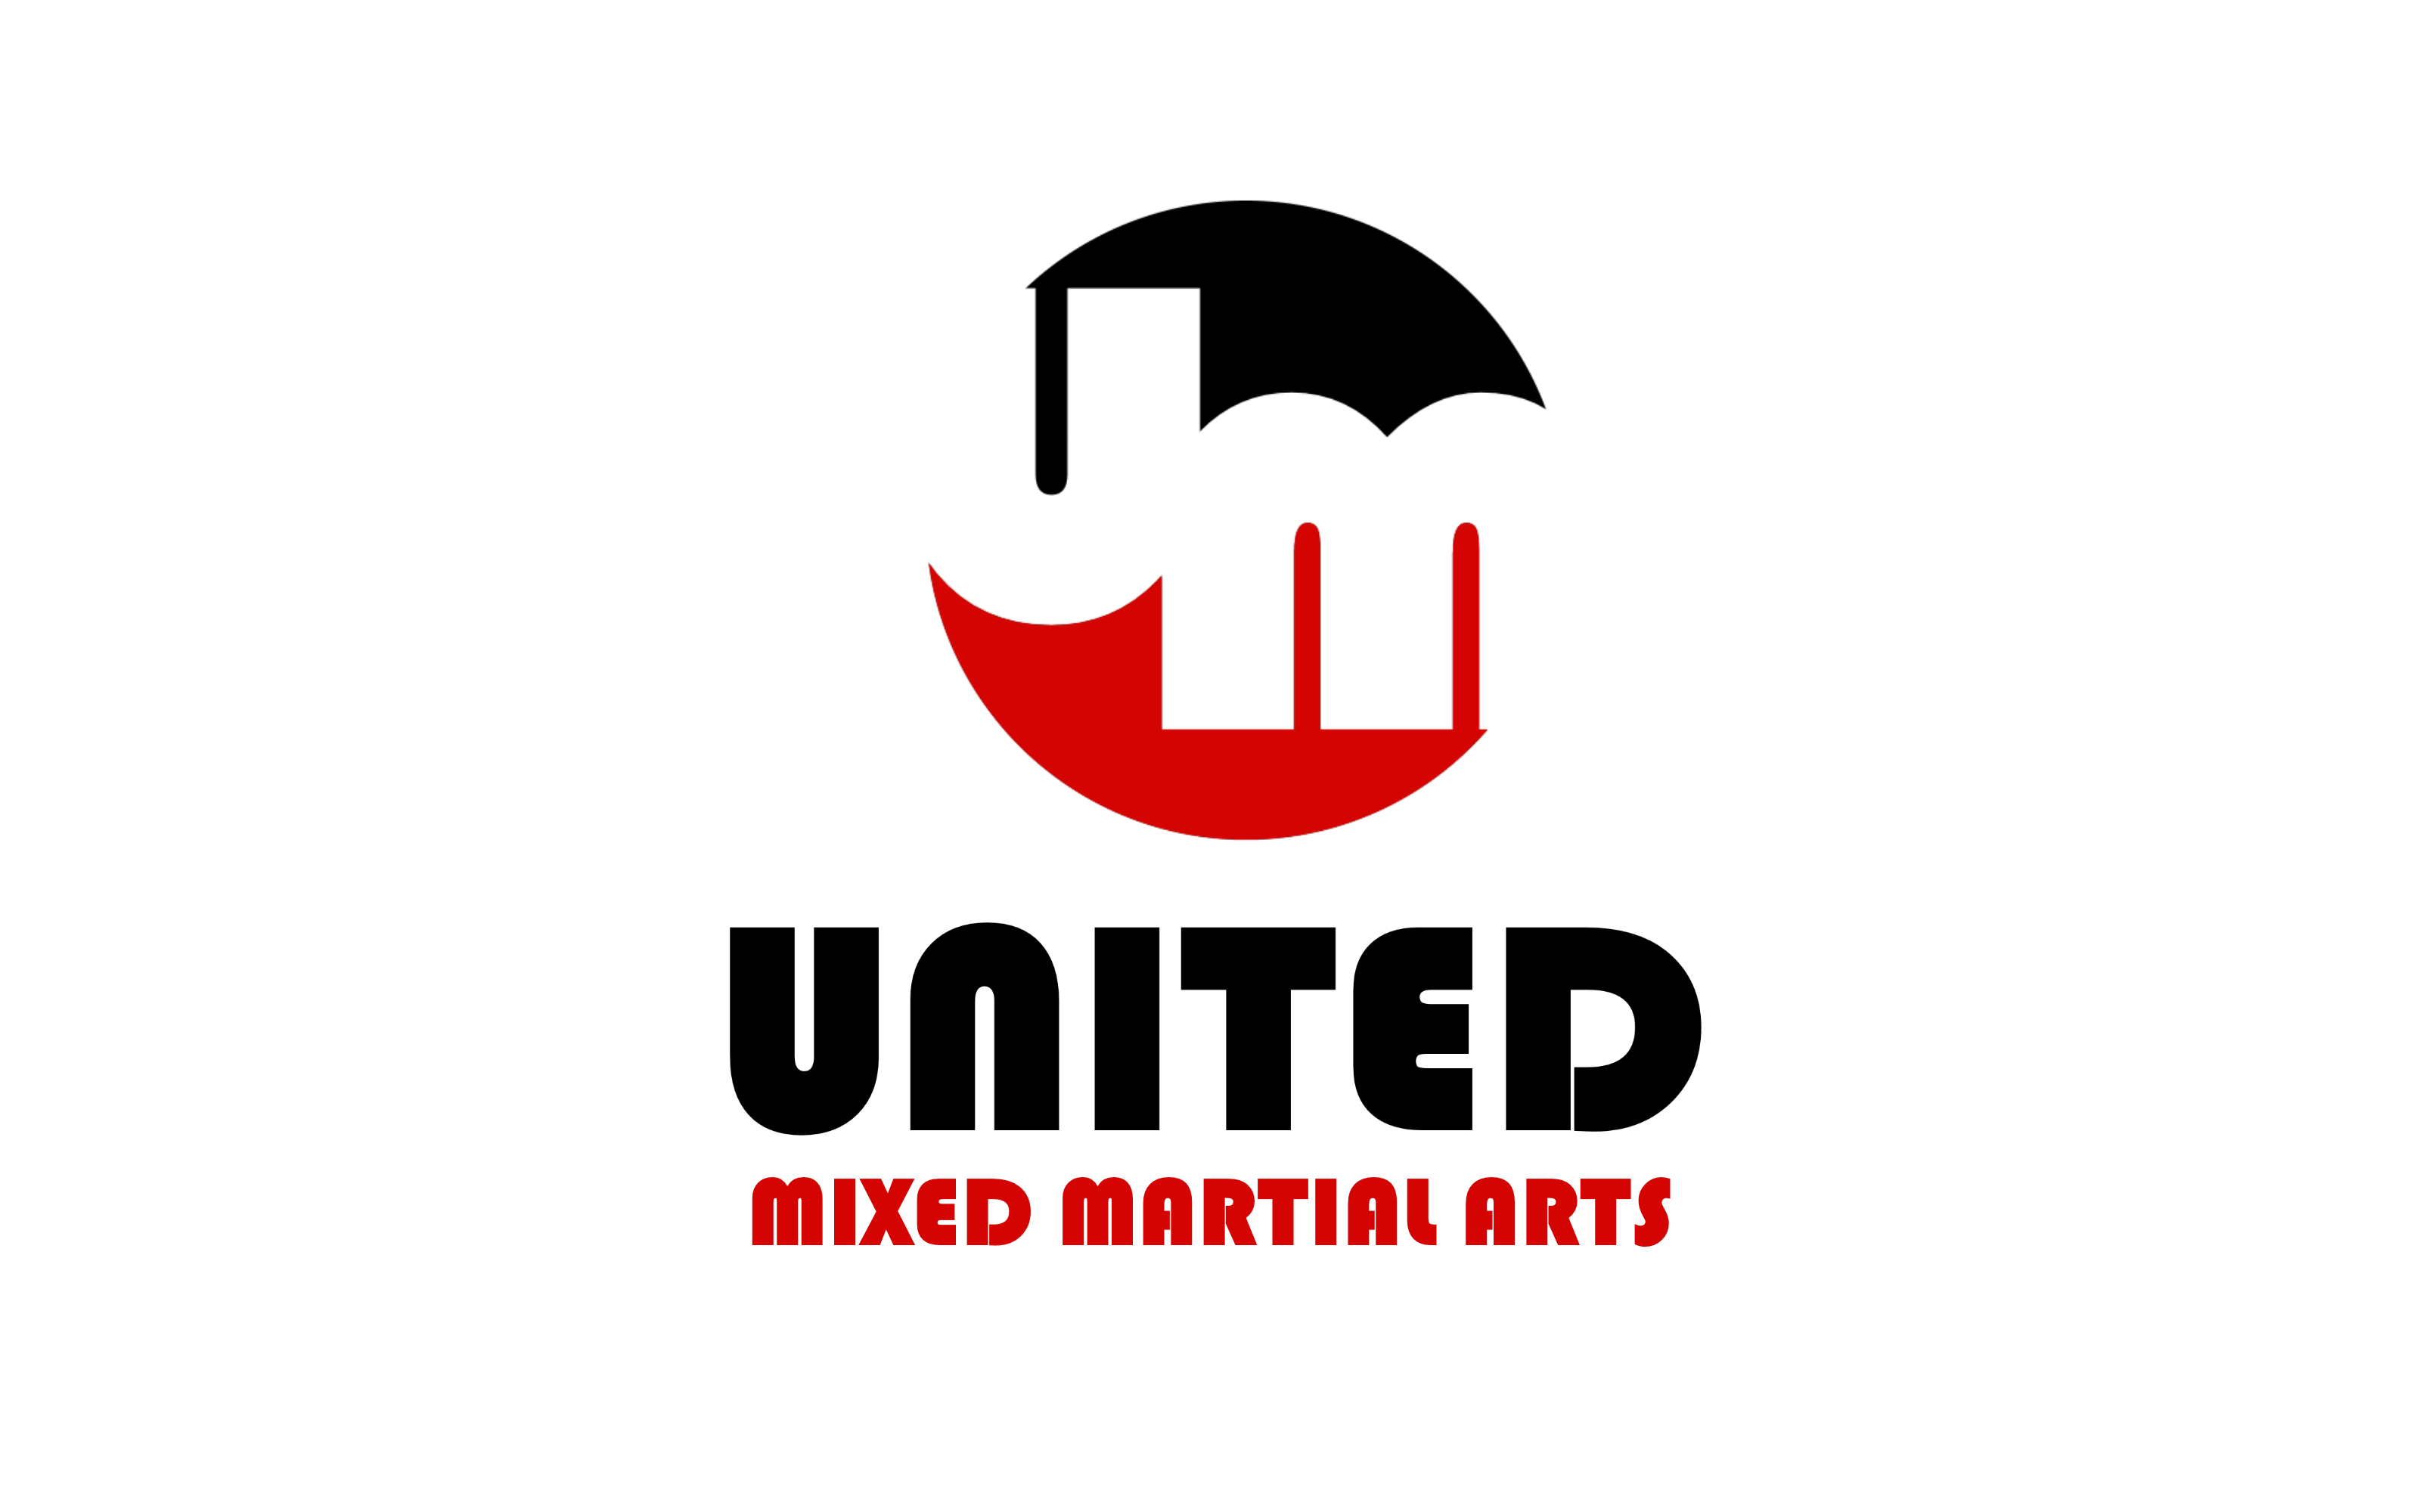 Logo Design by Roberto Bassi - Entry No. 112 in the Logo Design Contest Artistic Logo Design for United Mixed Martial Arts Ltd..